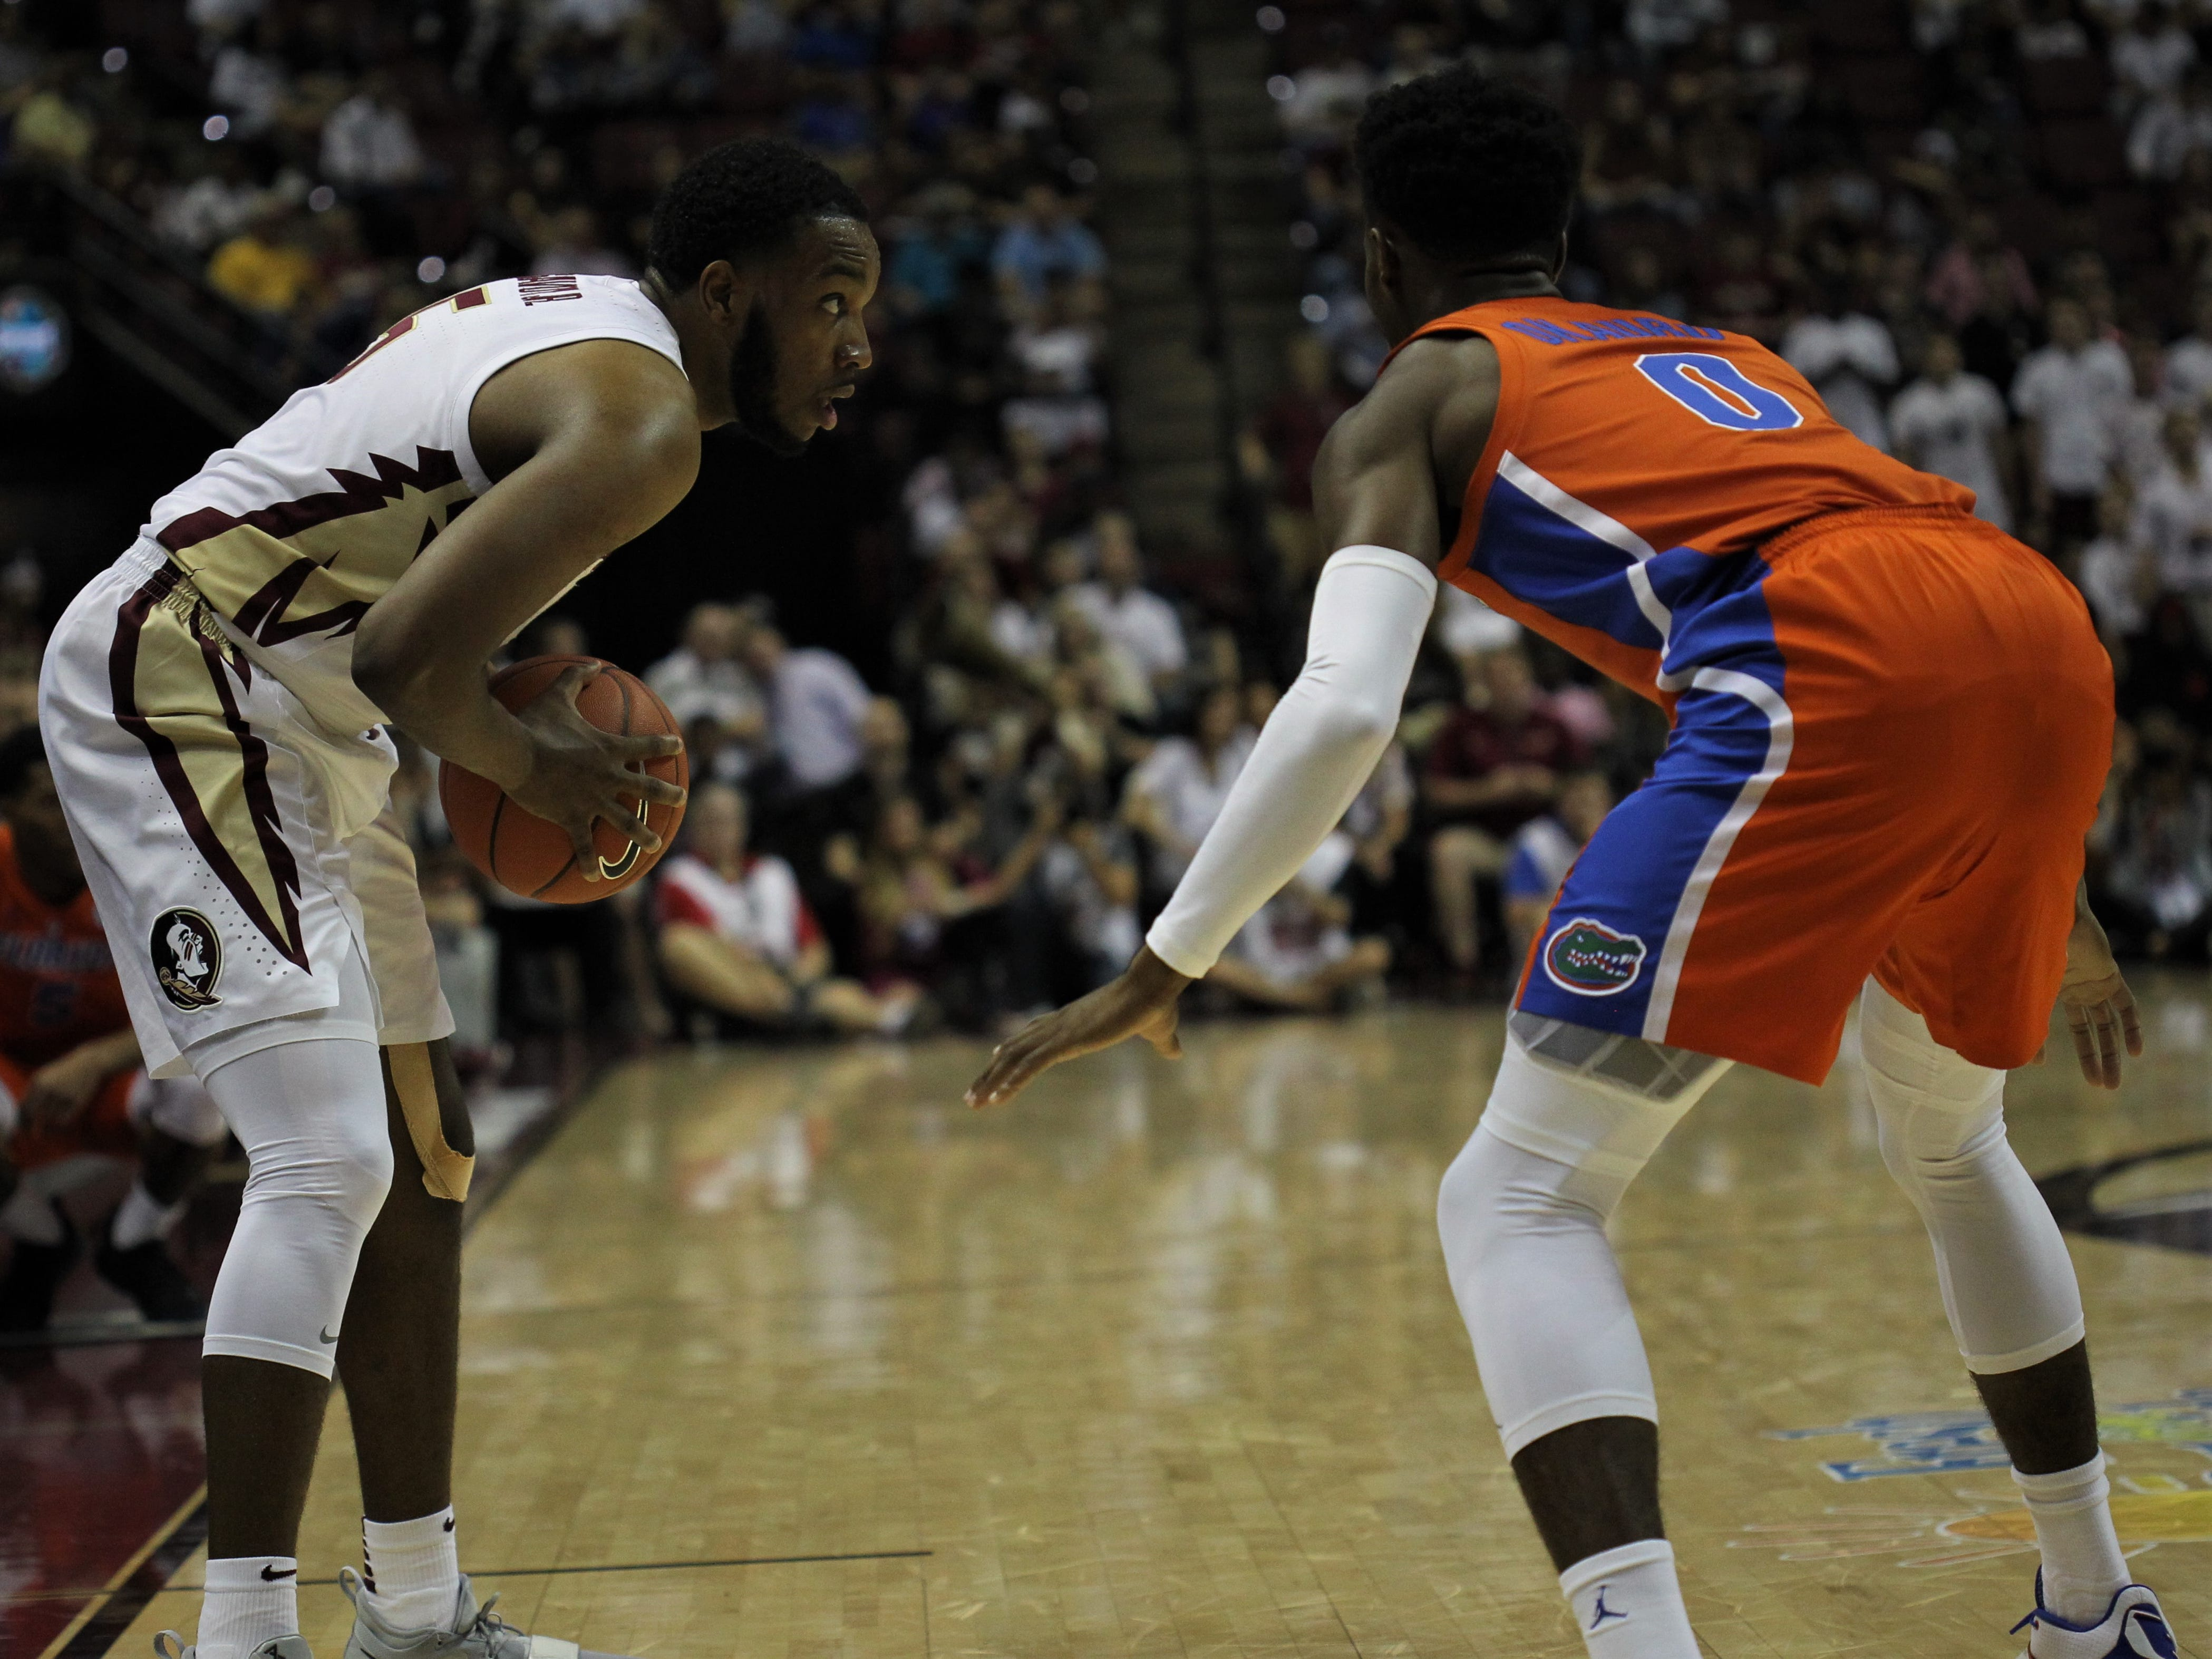 Florida State's P.J. Savoy runs his team's offense from the wing during the Sunshine Showdown game against Florida on Tuesday at the Tucker Civic Center.